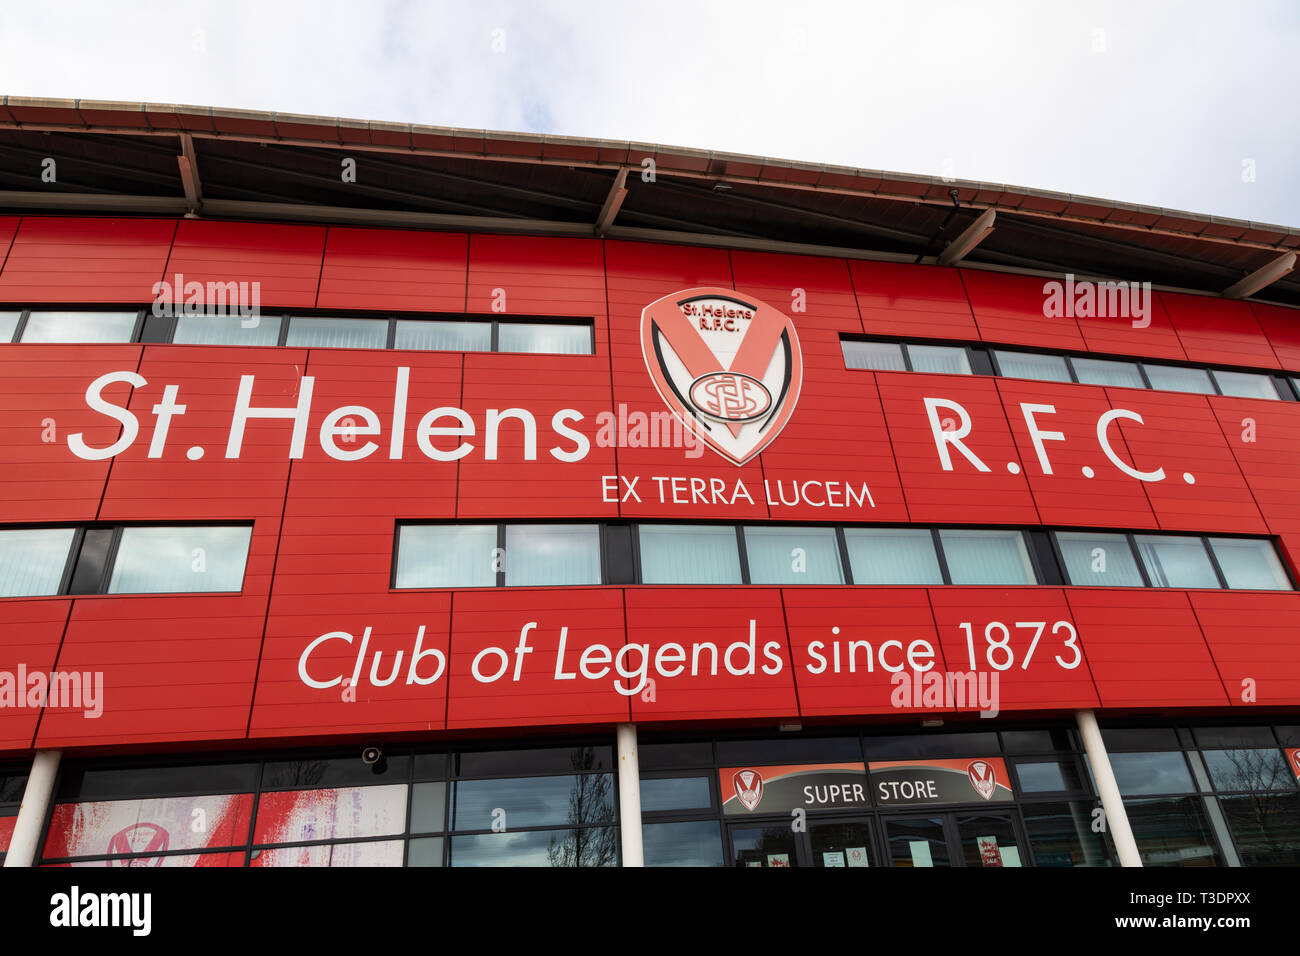 Exterior of main entrance for St Helens Rugby Football Club stadium St Helens Lancashire March 2019 Stock Photo